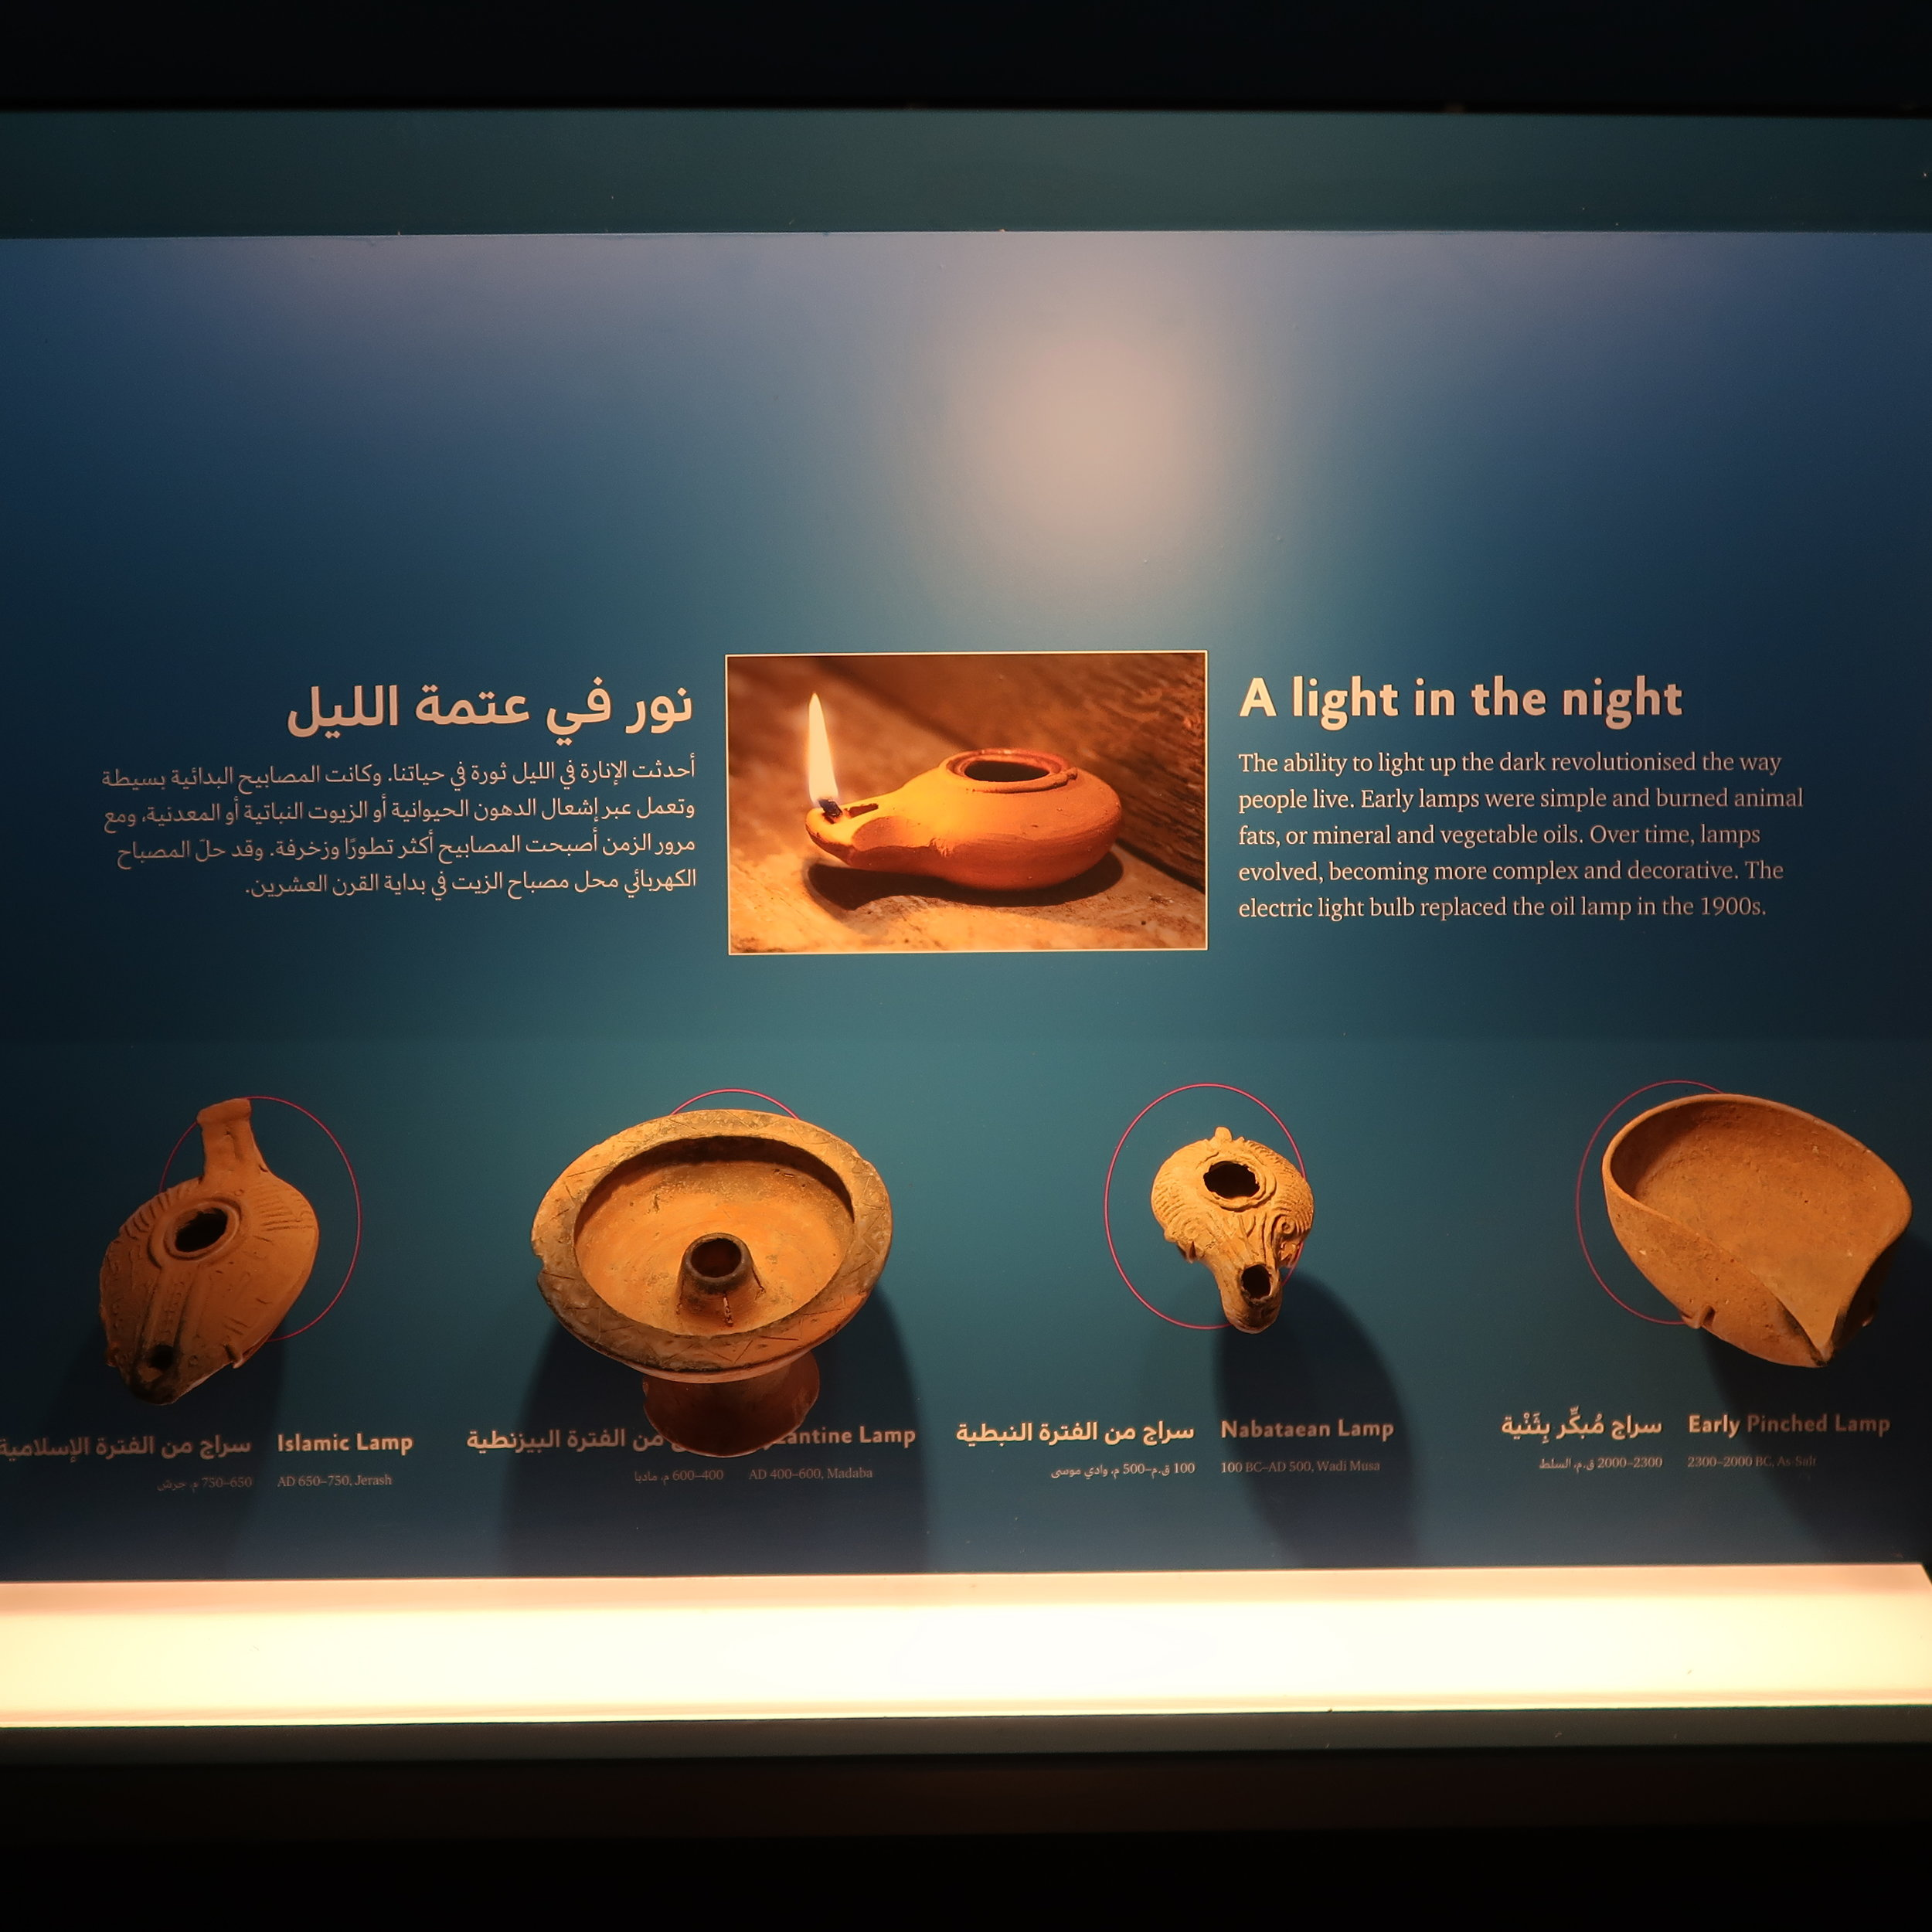 upsouth-mingmingfeng-jordan-travel-amman-day3-musem-01.JPG